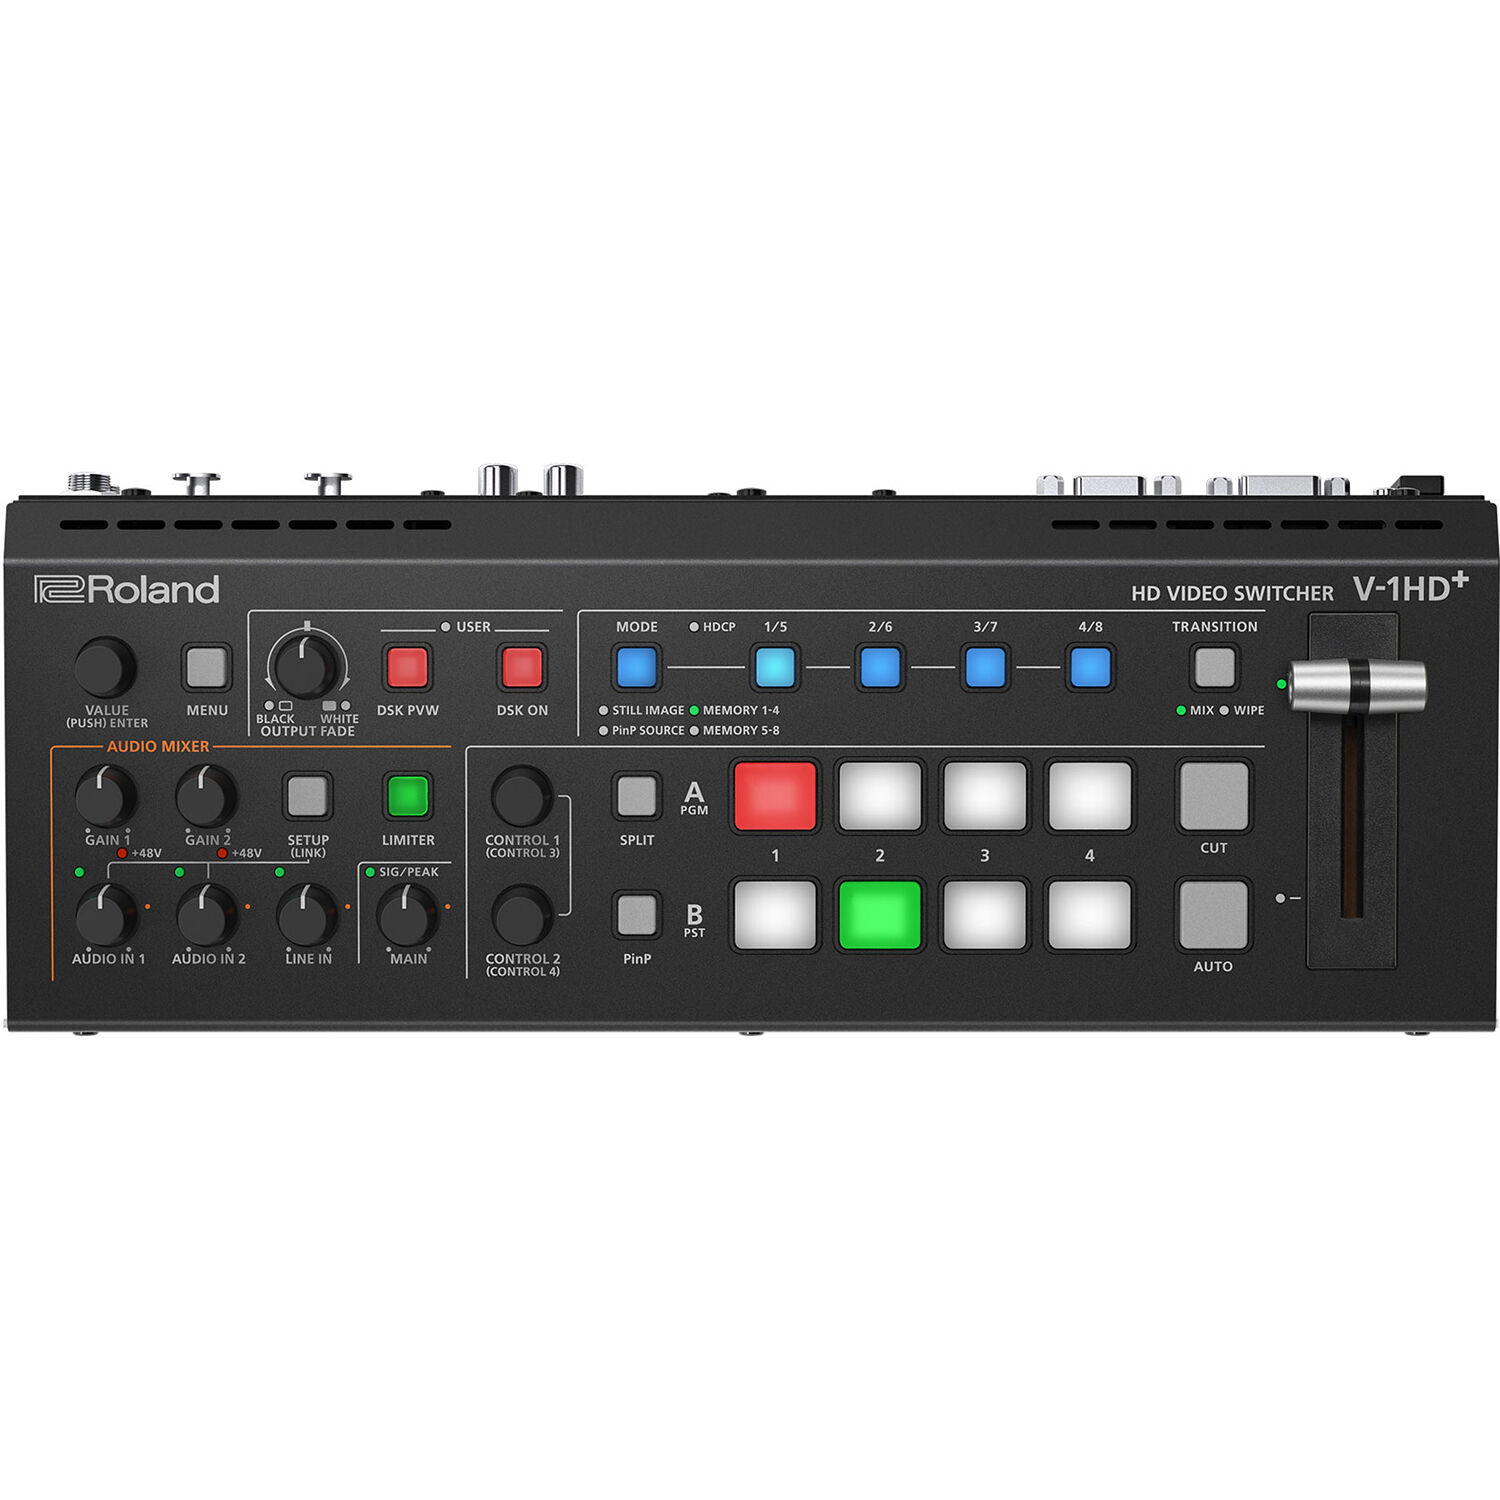 Roland V-1HD+ Compact 4 x HDMI Video Switcher LIVE STREAM